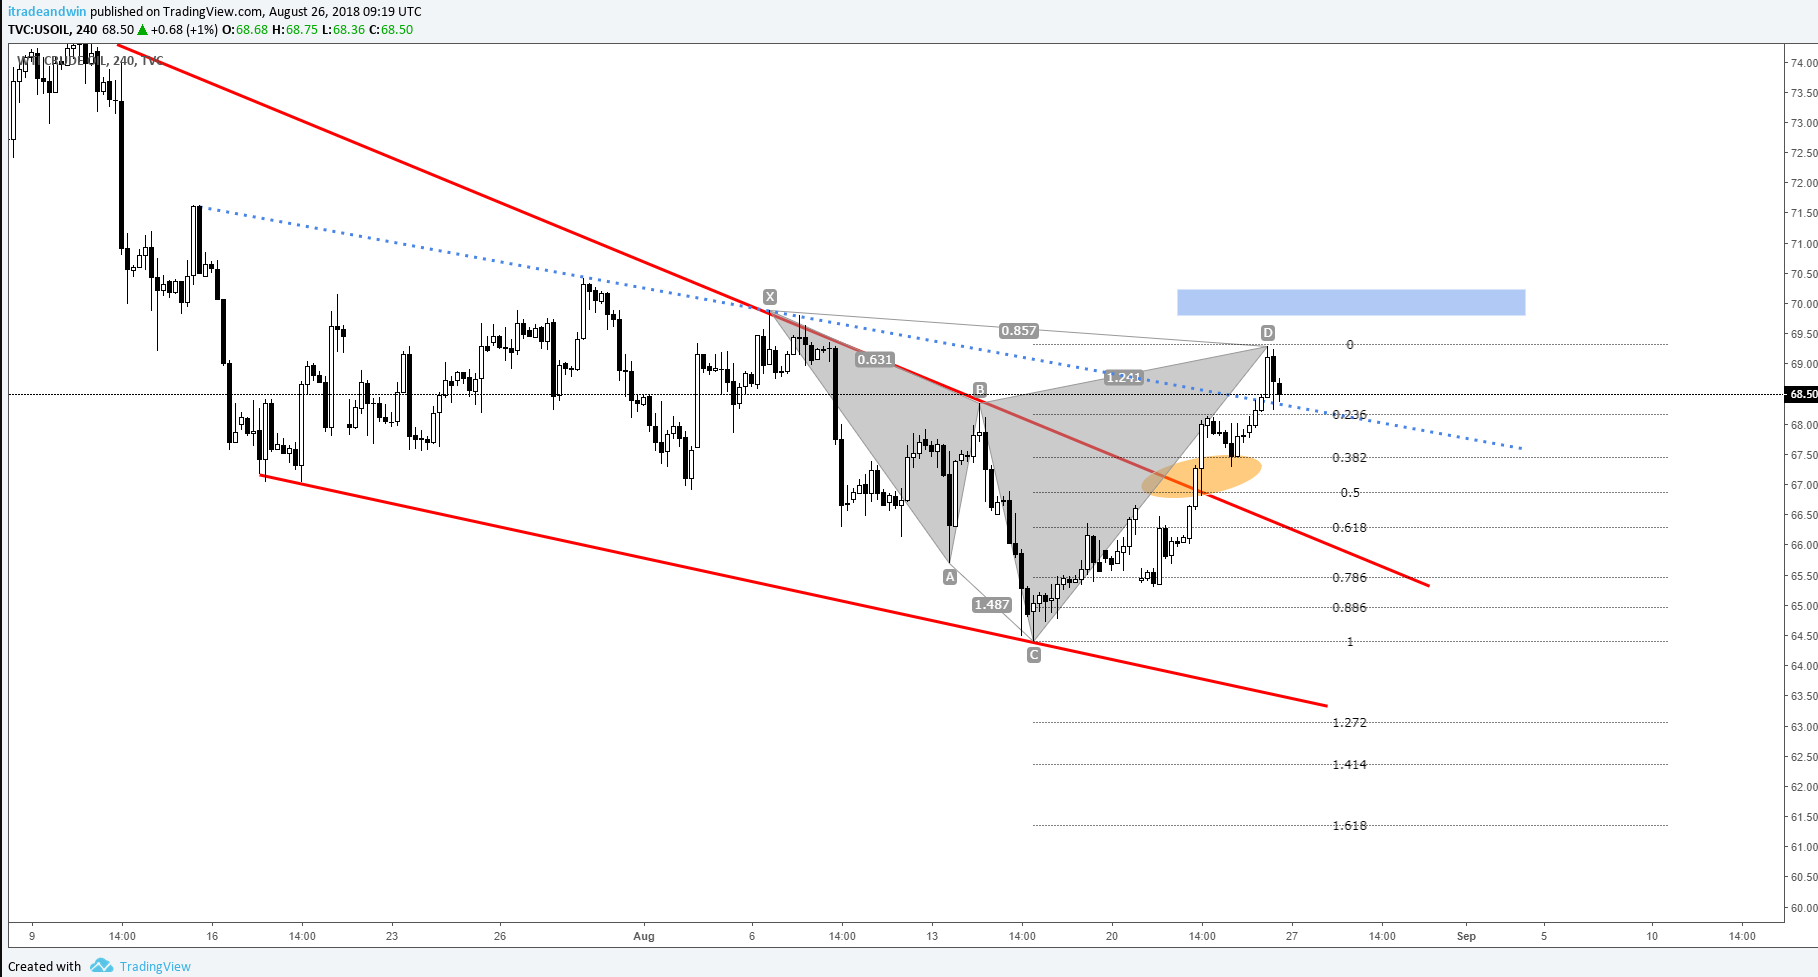 Crude Oil Technical Overview: Falling Wedge Breakout